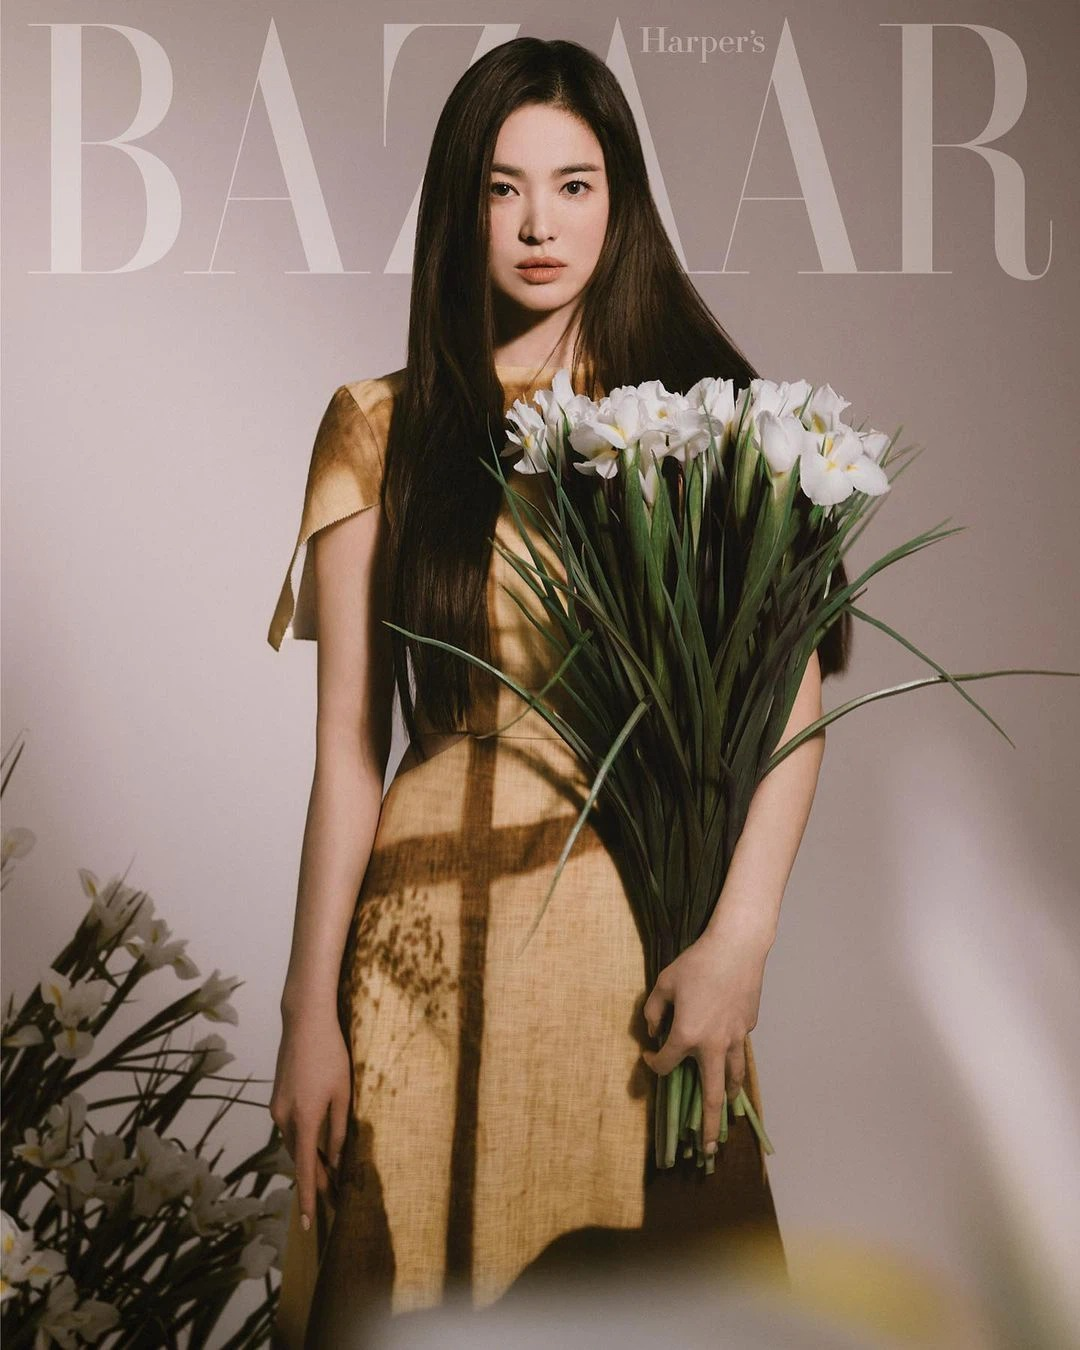 Song Hye Kyo 'collects' fanboys all male Cbiz: Duong Duong forgot to eat and sleep 2